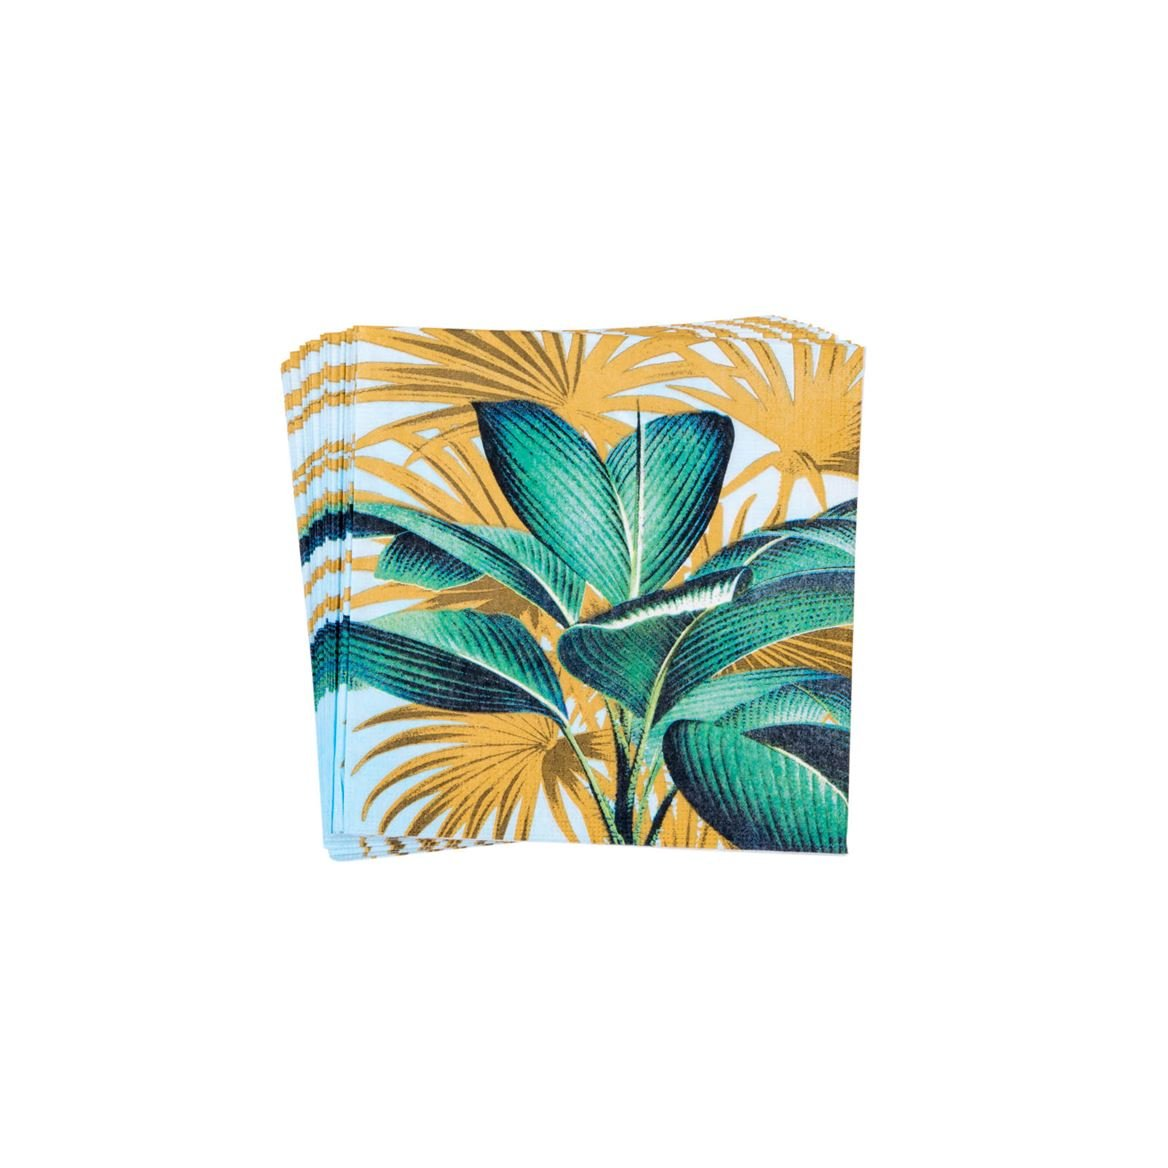 TROPICAL LEAVES Set de 20 serviettes vert Larg. 33 x Long. 33 cm_tropical-leaves-set-de-20-serviettes-vert-larg--33-x-long--33-cm